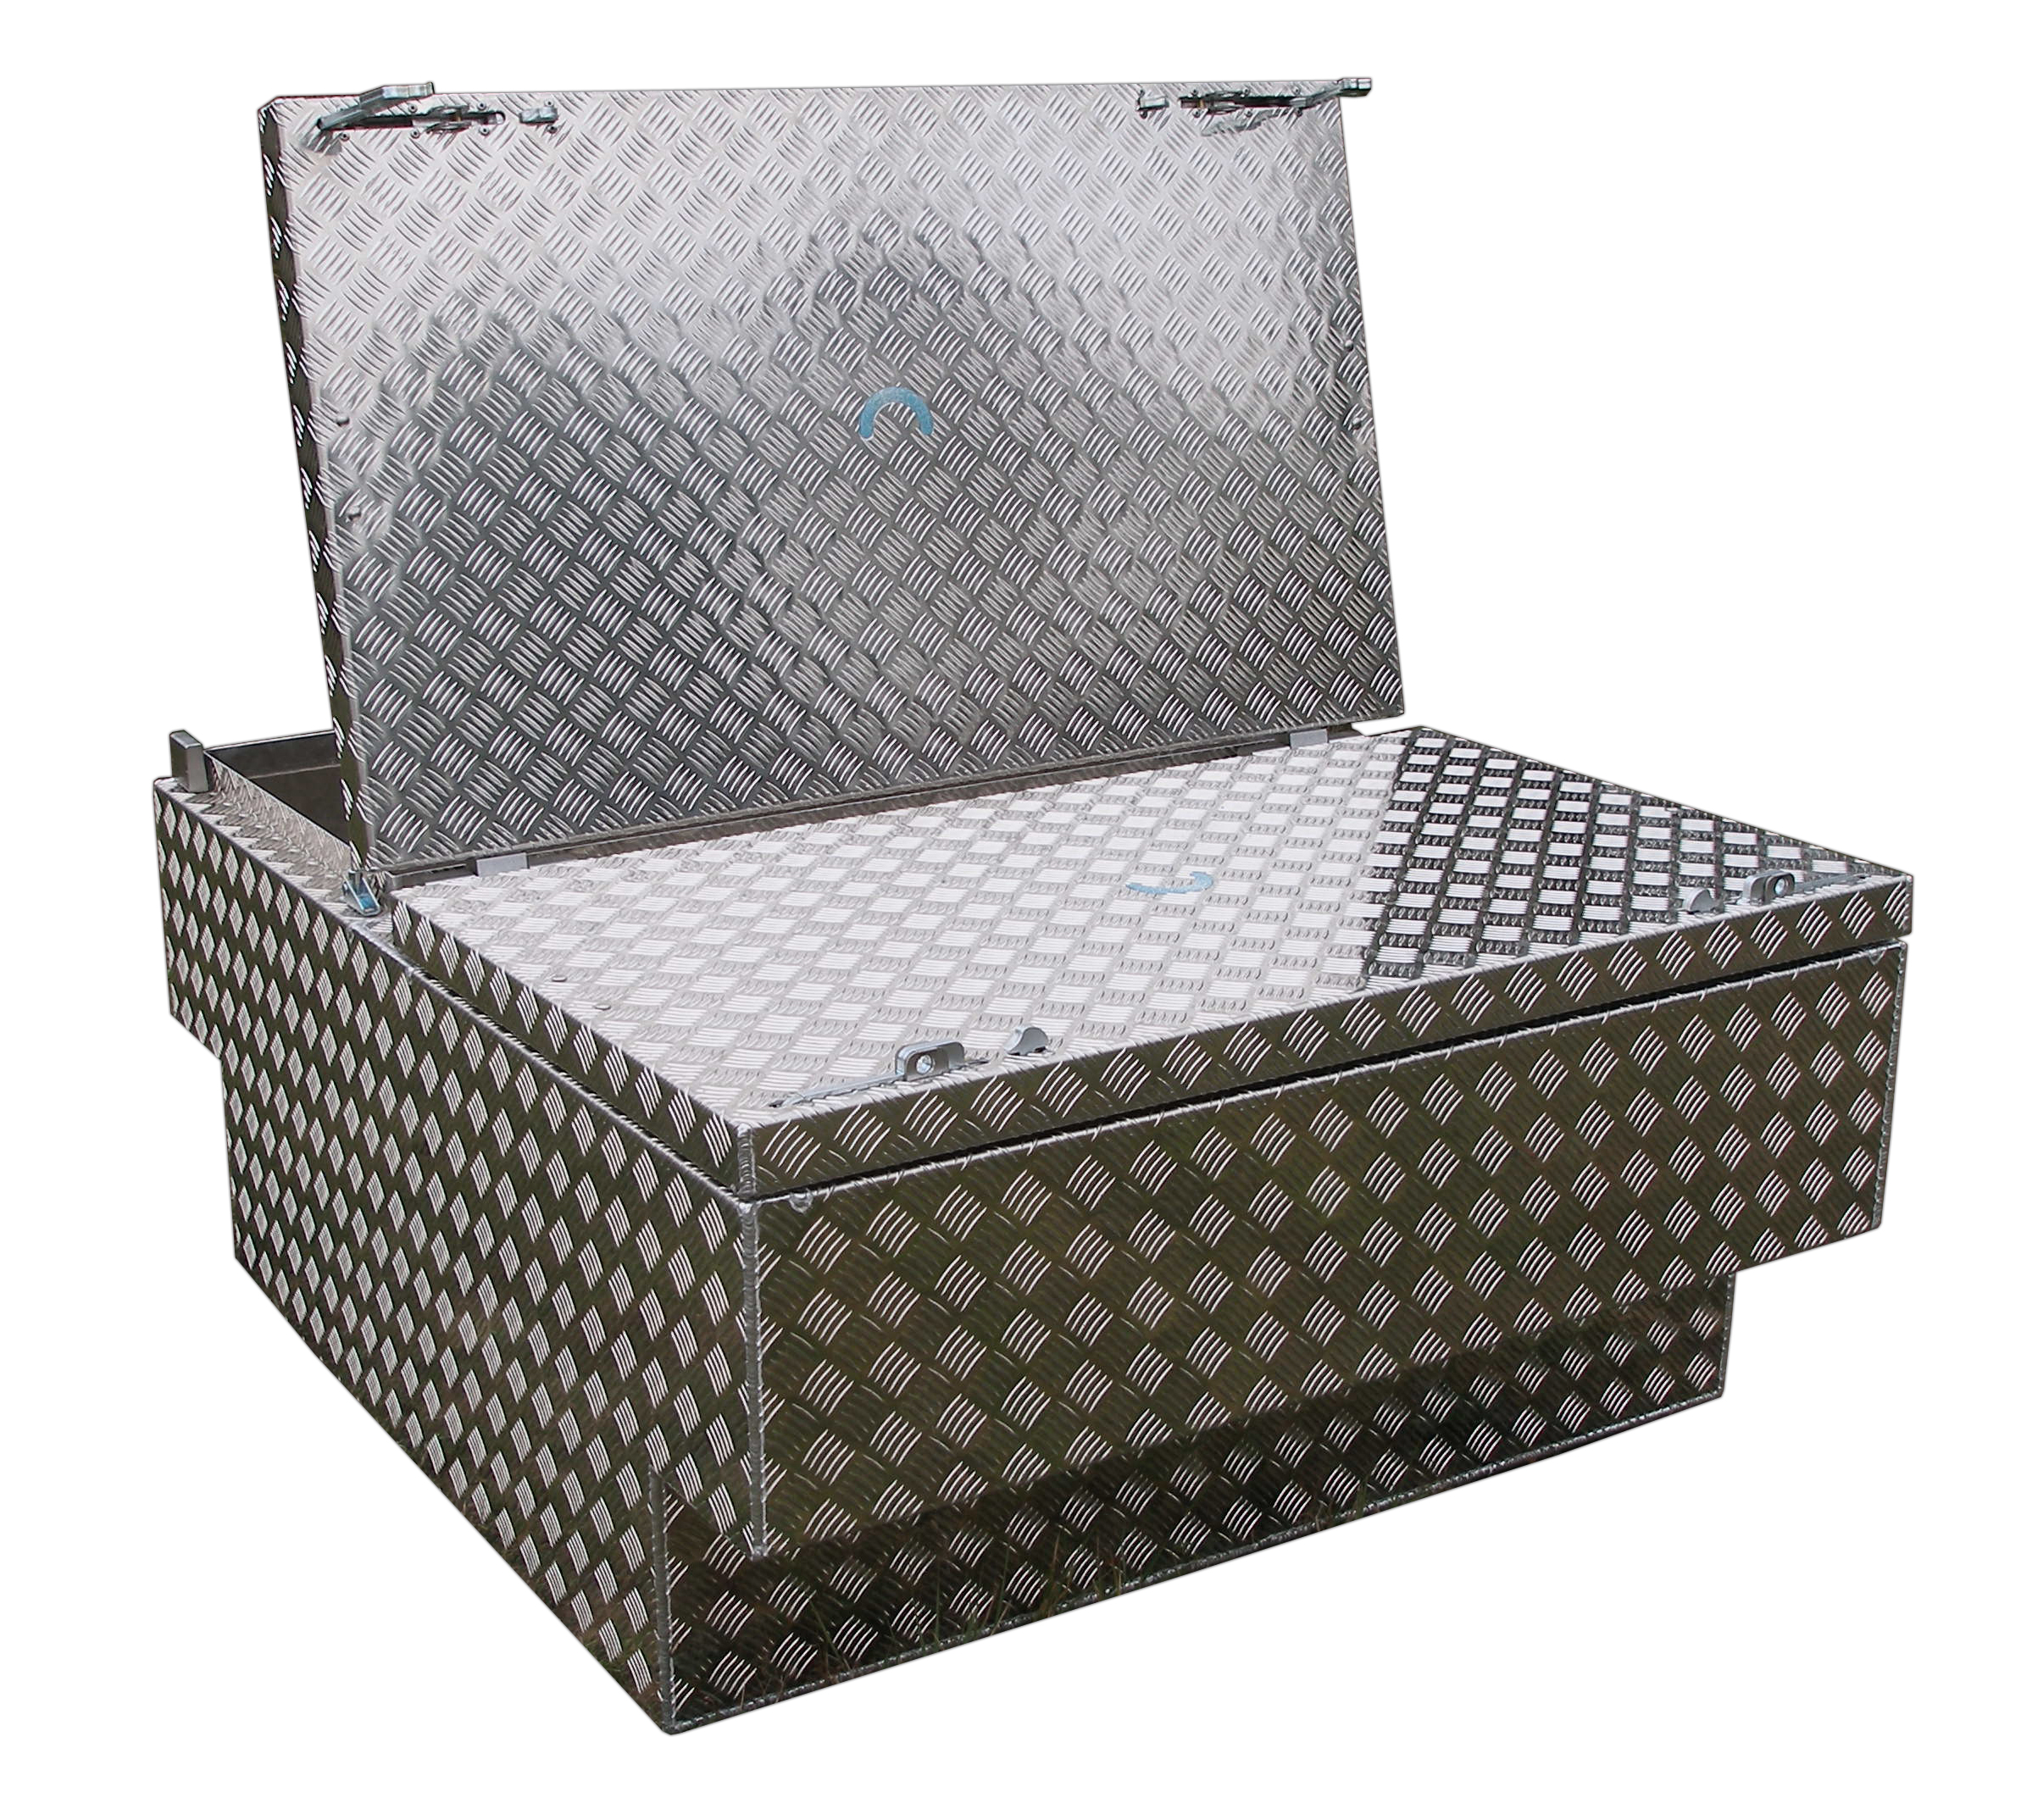 Aluminium Toolbox Brossbox